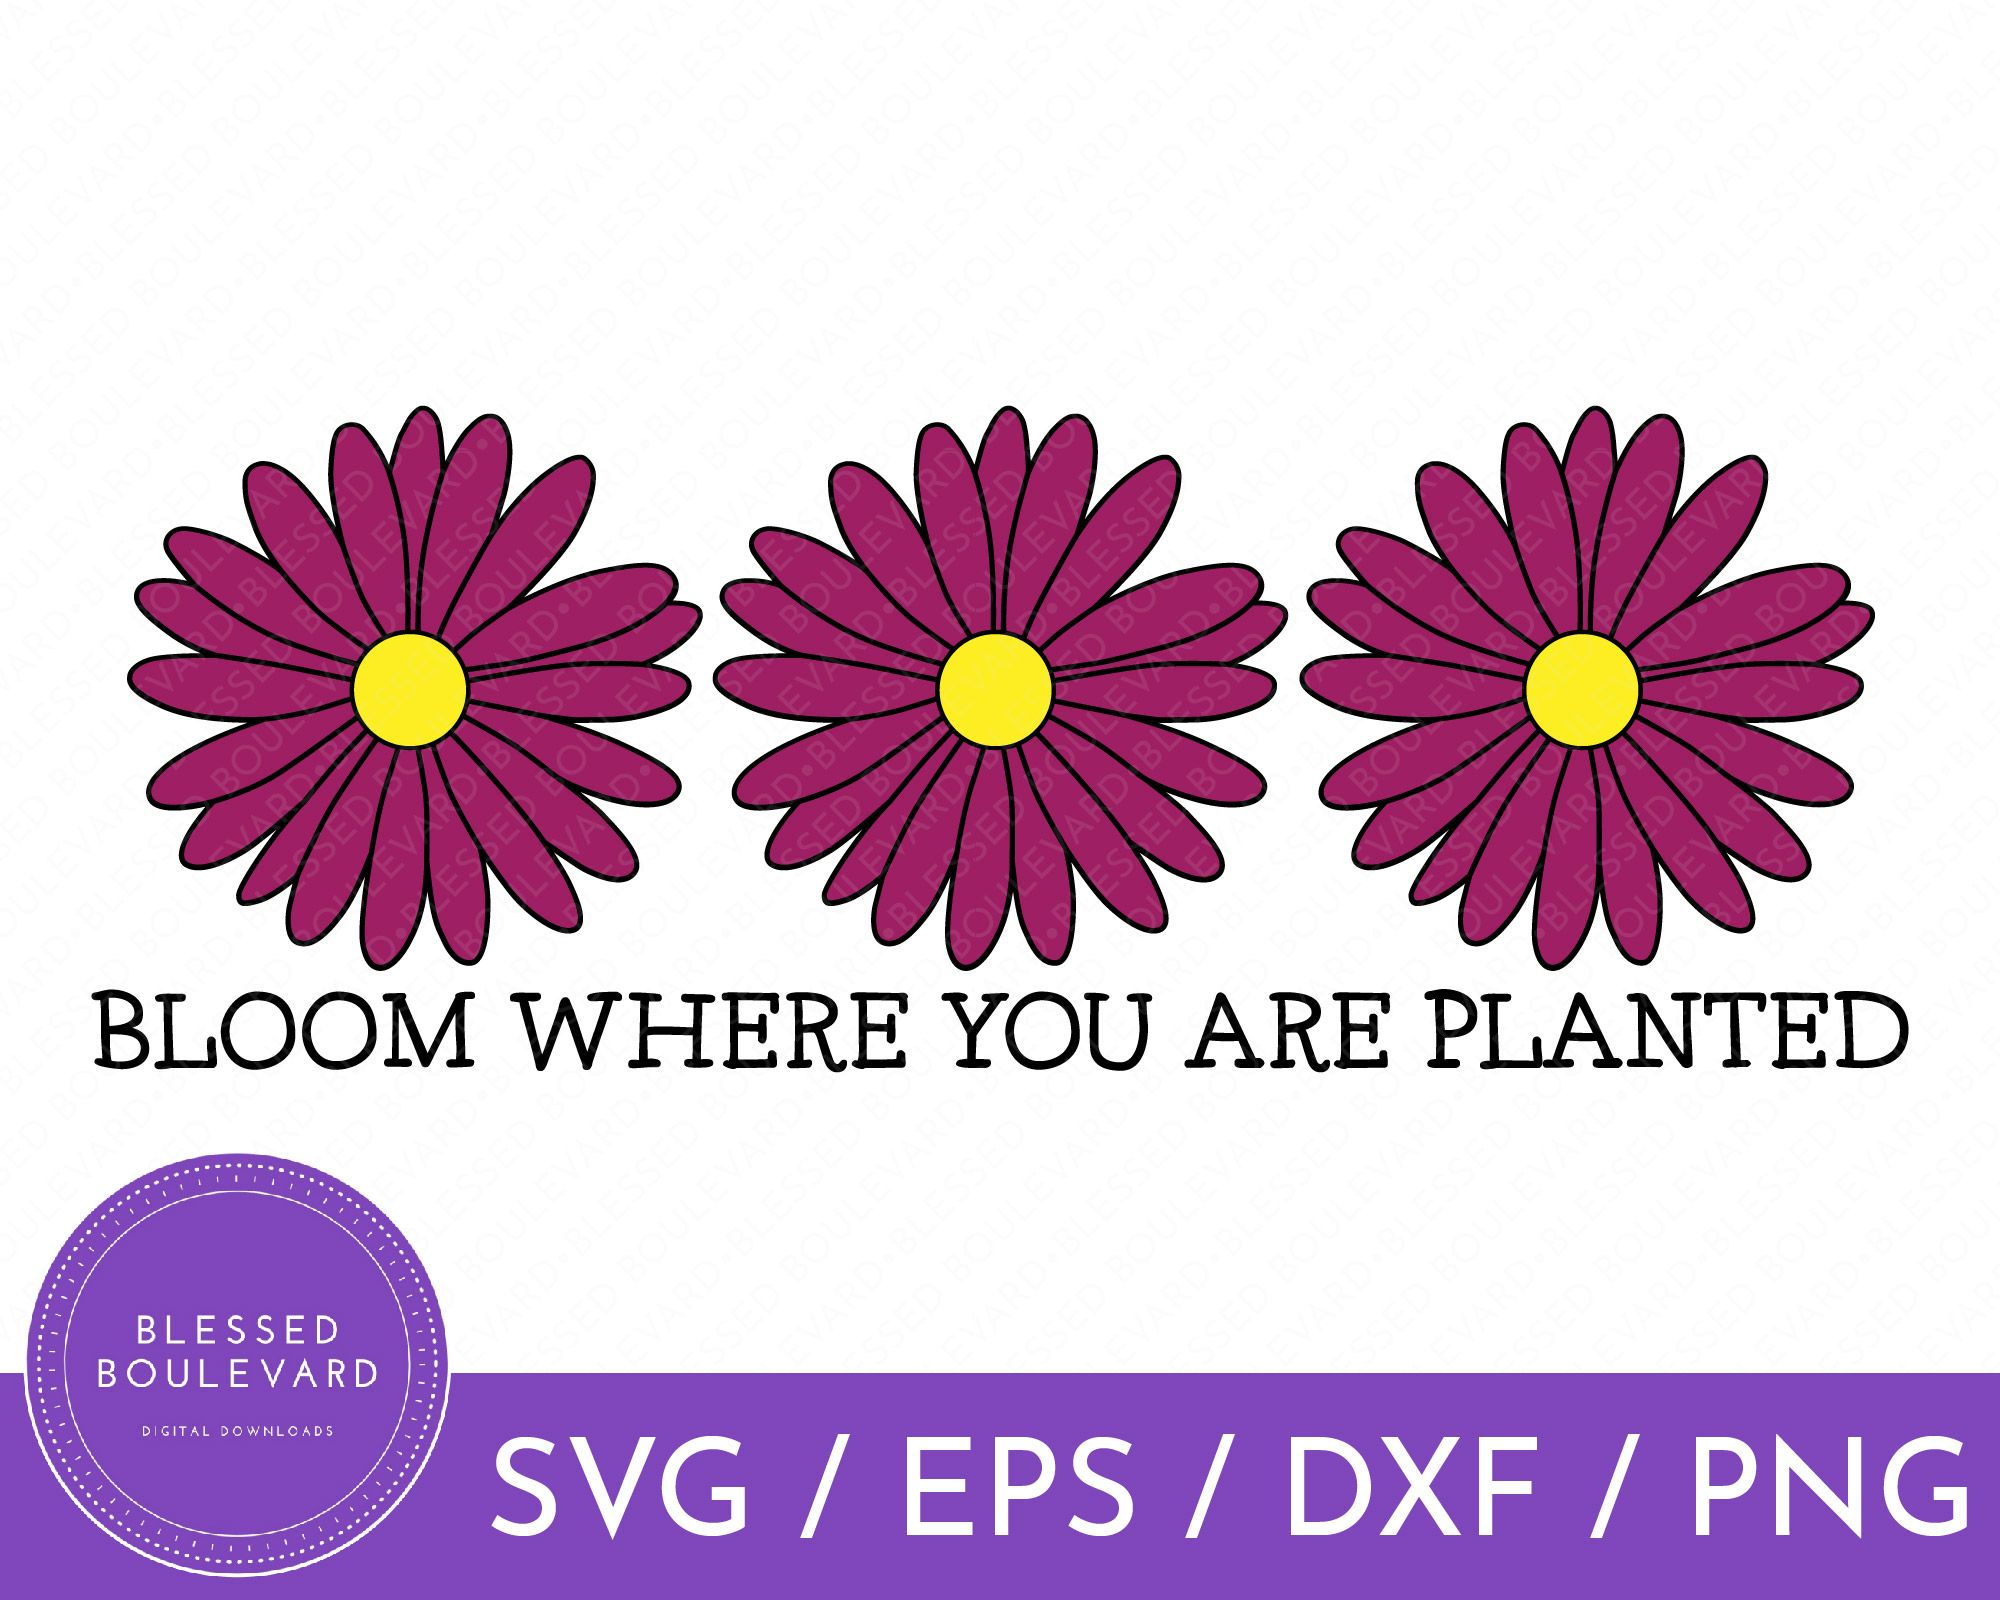 Bloom Where You Are Planted Svg Flower Svg Garden Svg Quote Svg Saying Svg Daisy Svg Png Dxf In 2020 Flower Svg Bloom Where You Are Planted Cards Handmade